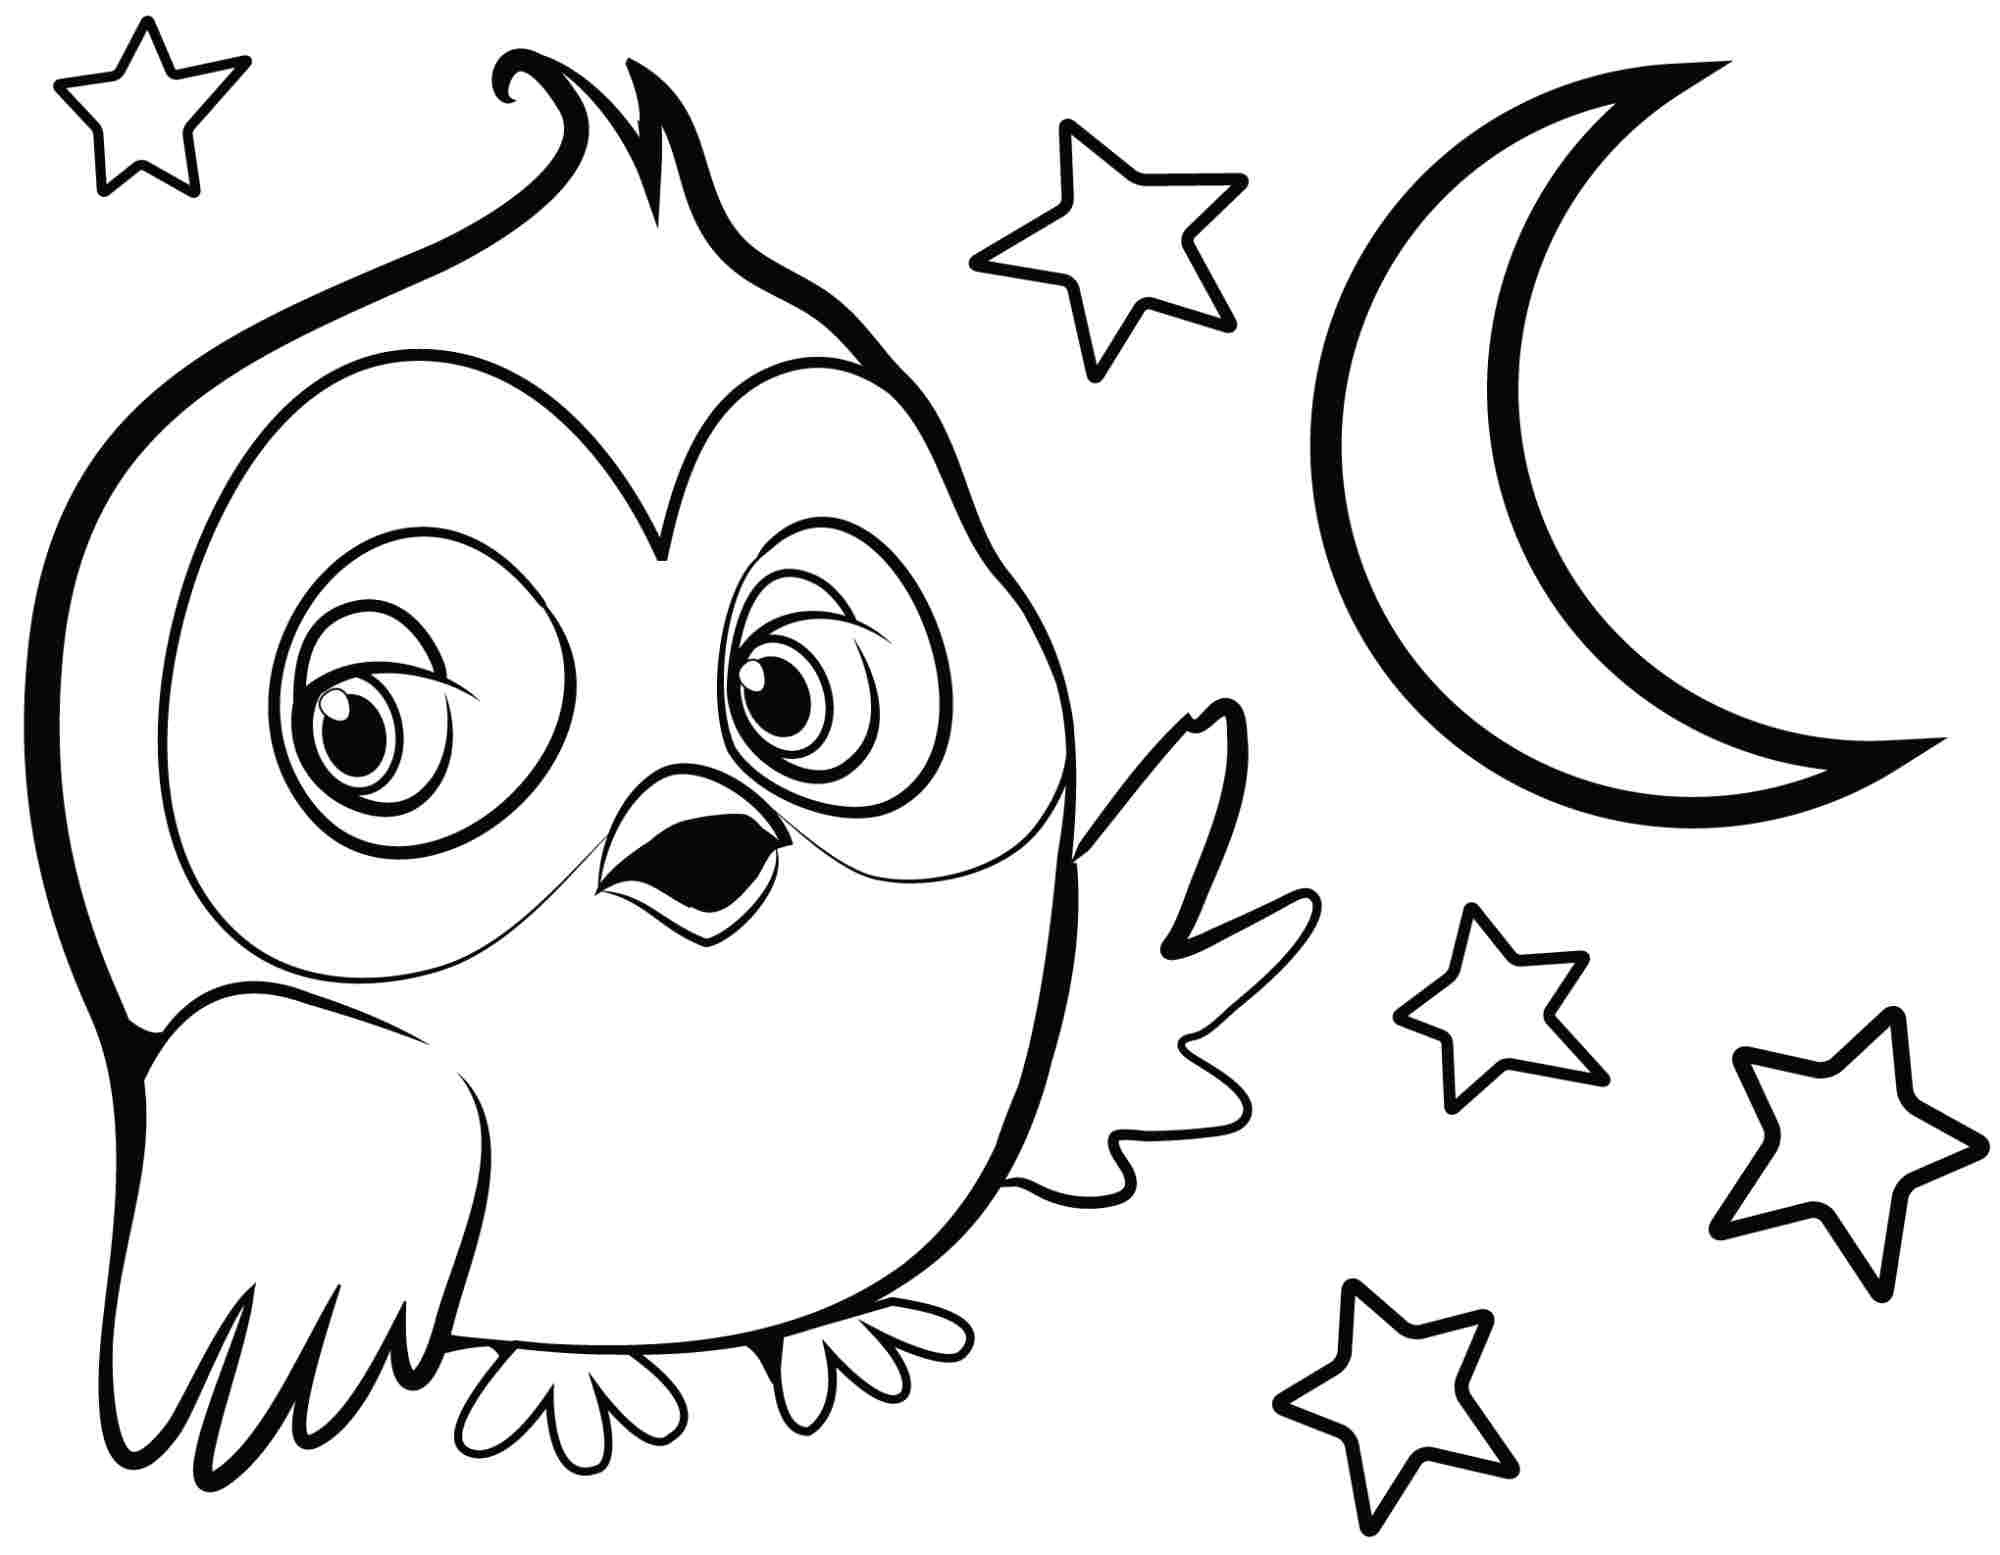 Easy Animal Coloring Pages For Kids at GetDrawings | Free ...